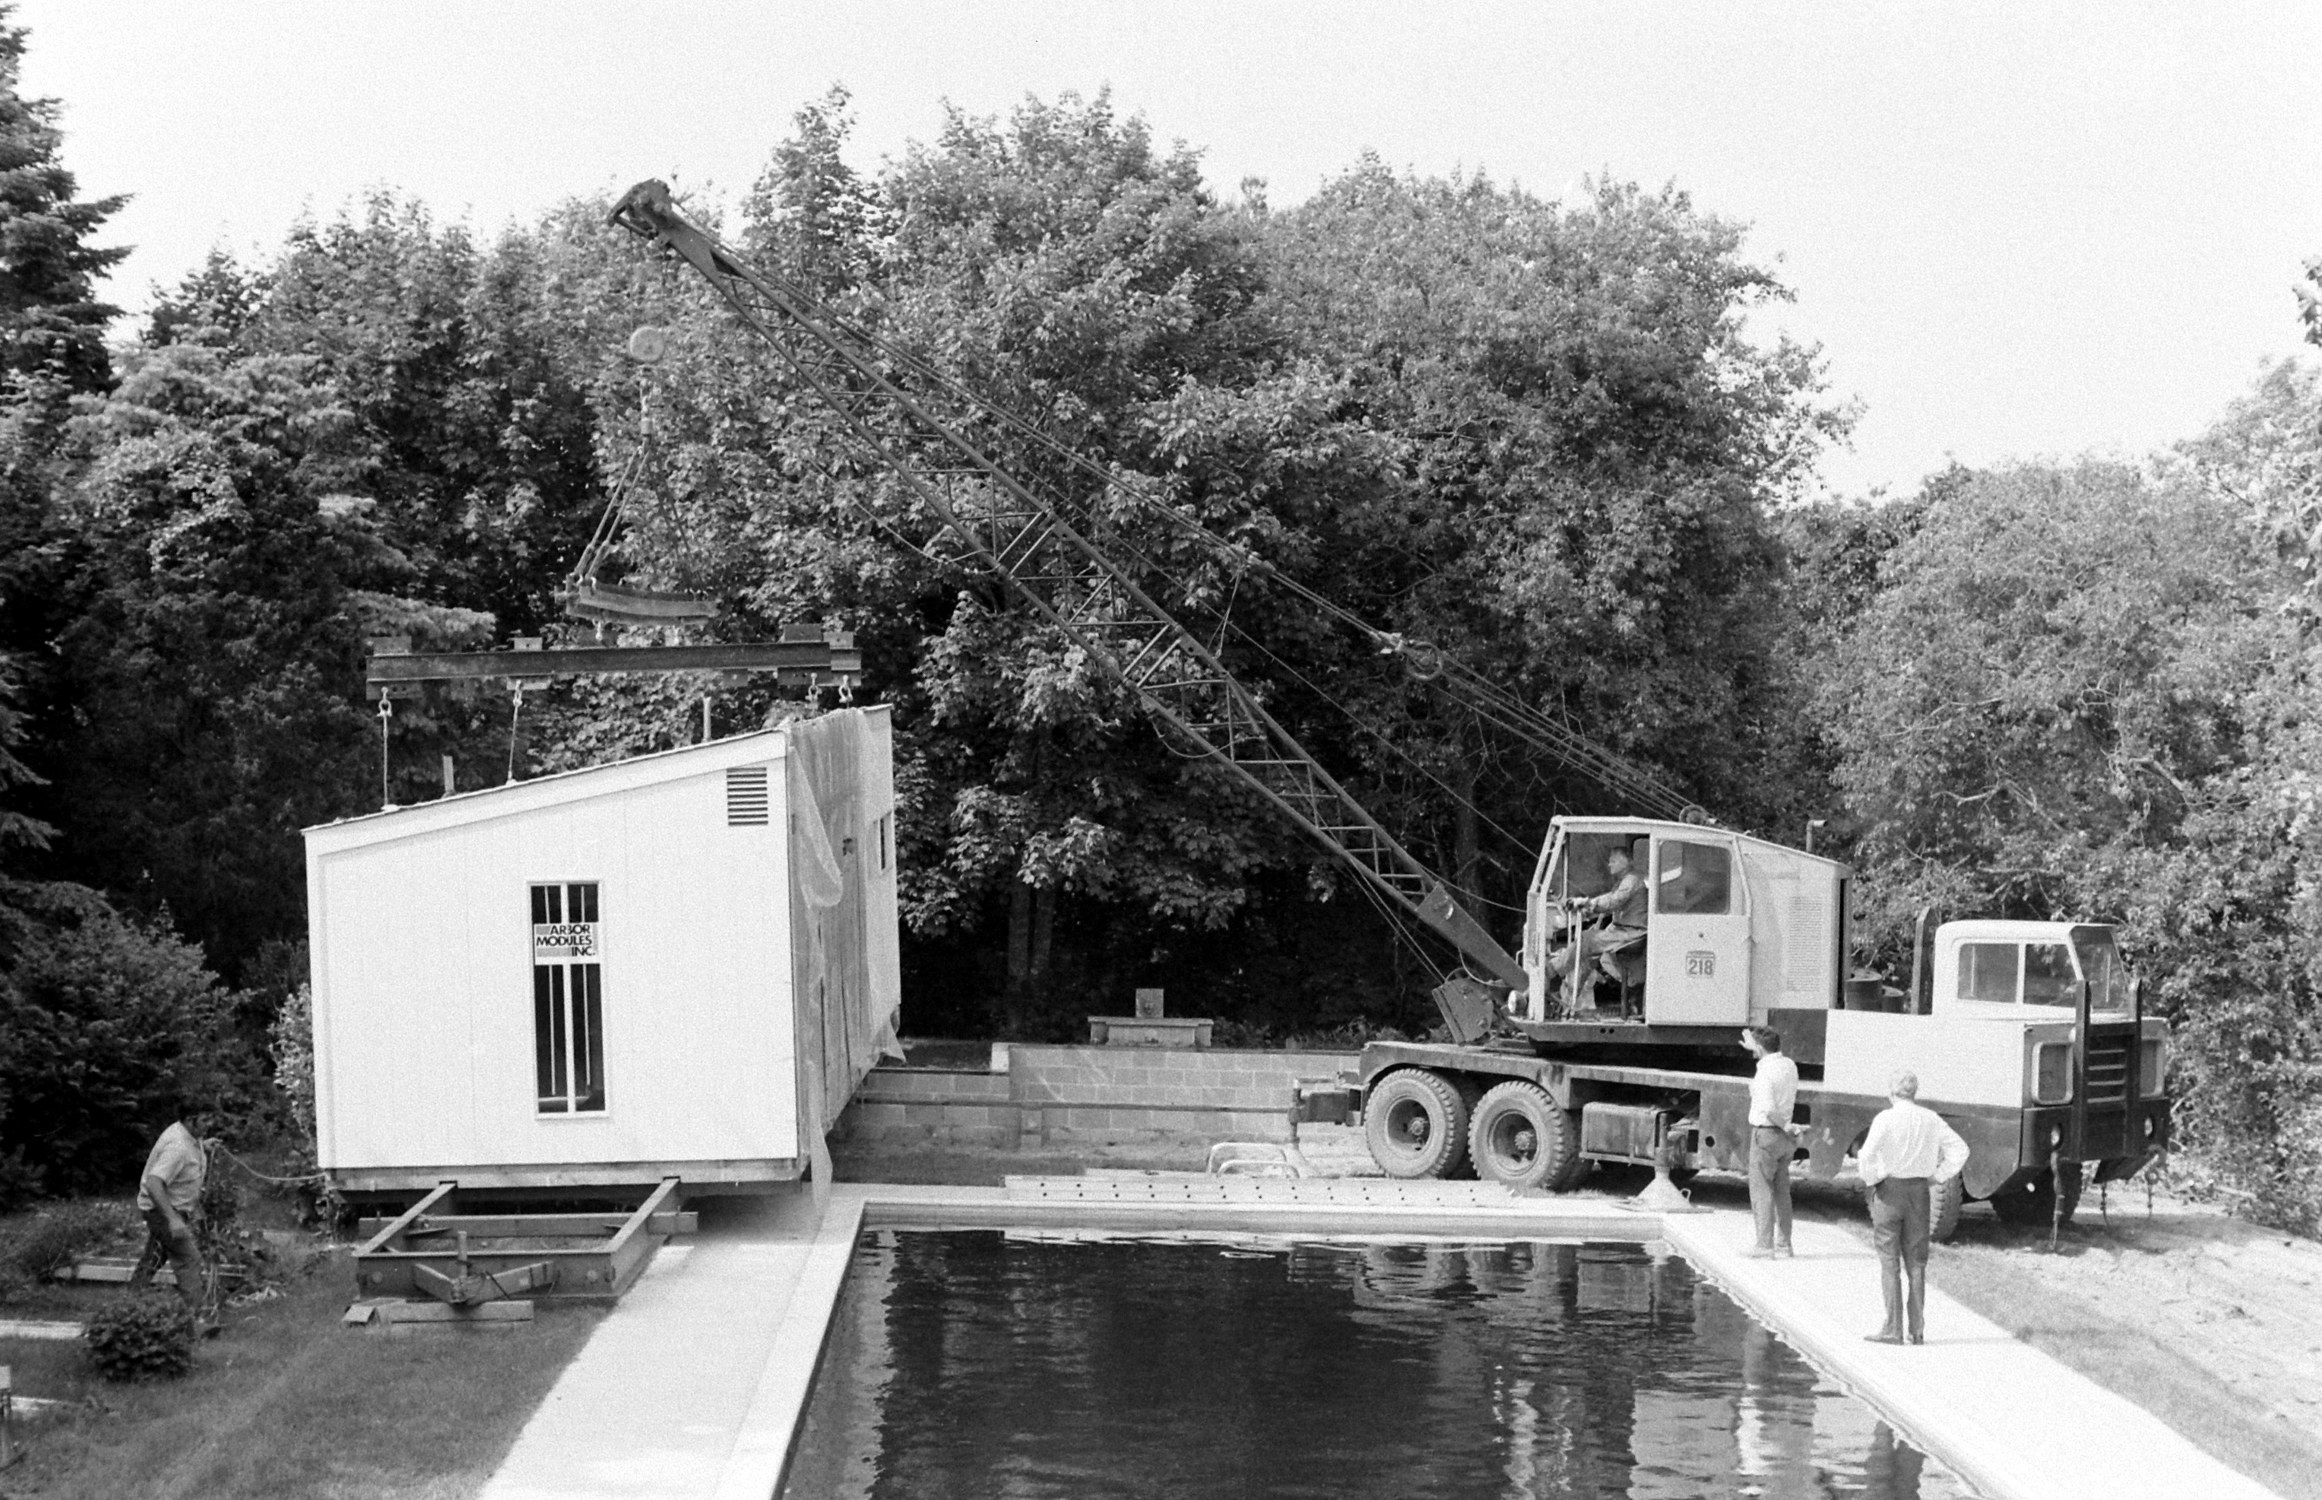 The construction of a private swimming pool in someone's backyard in the 1970s